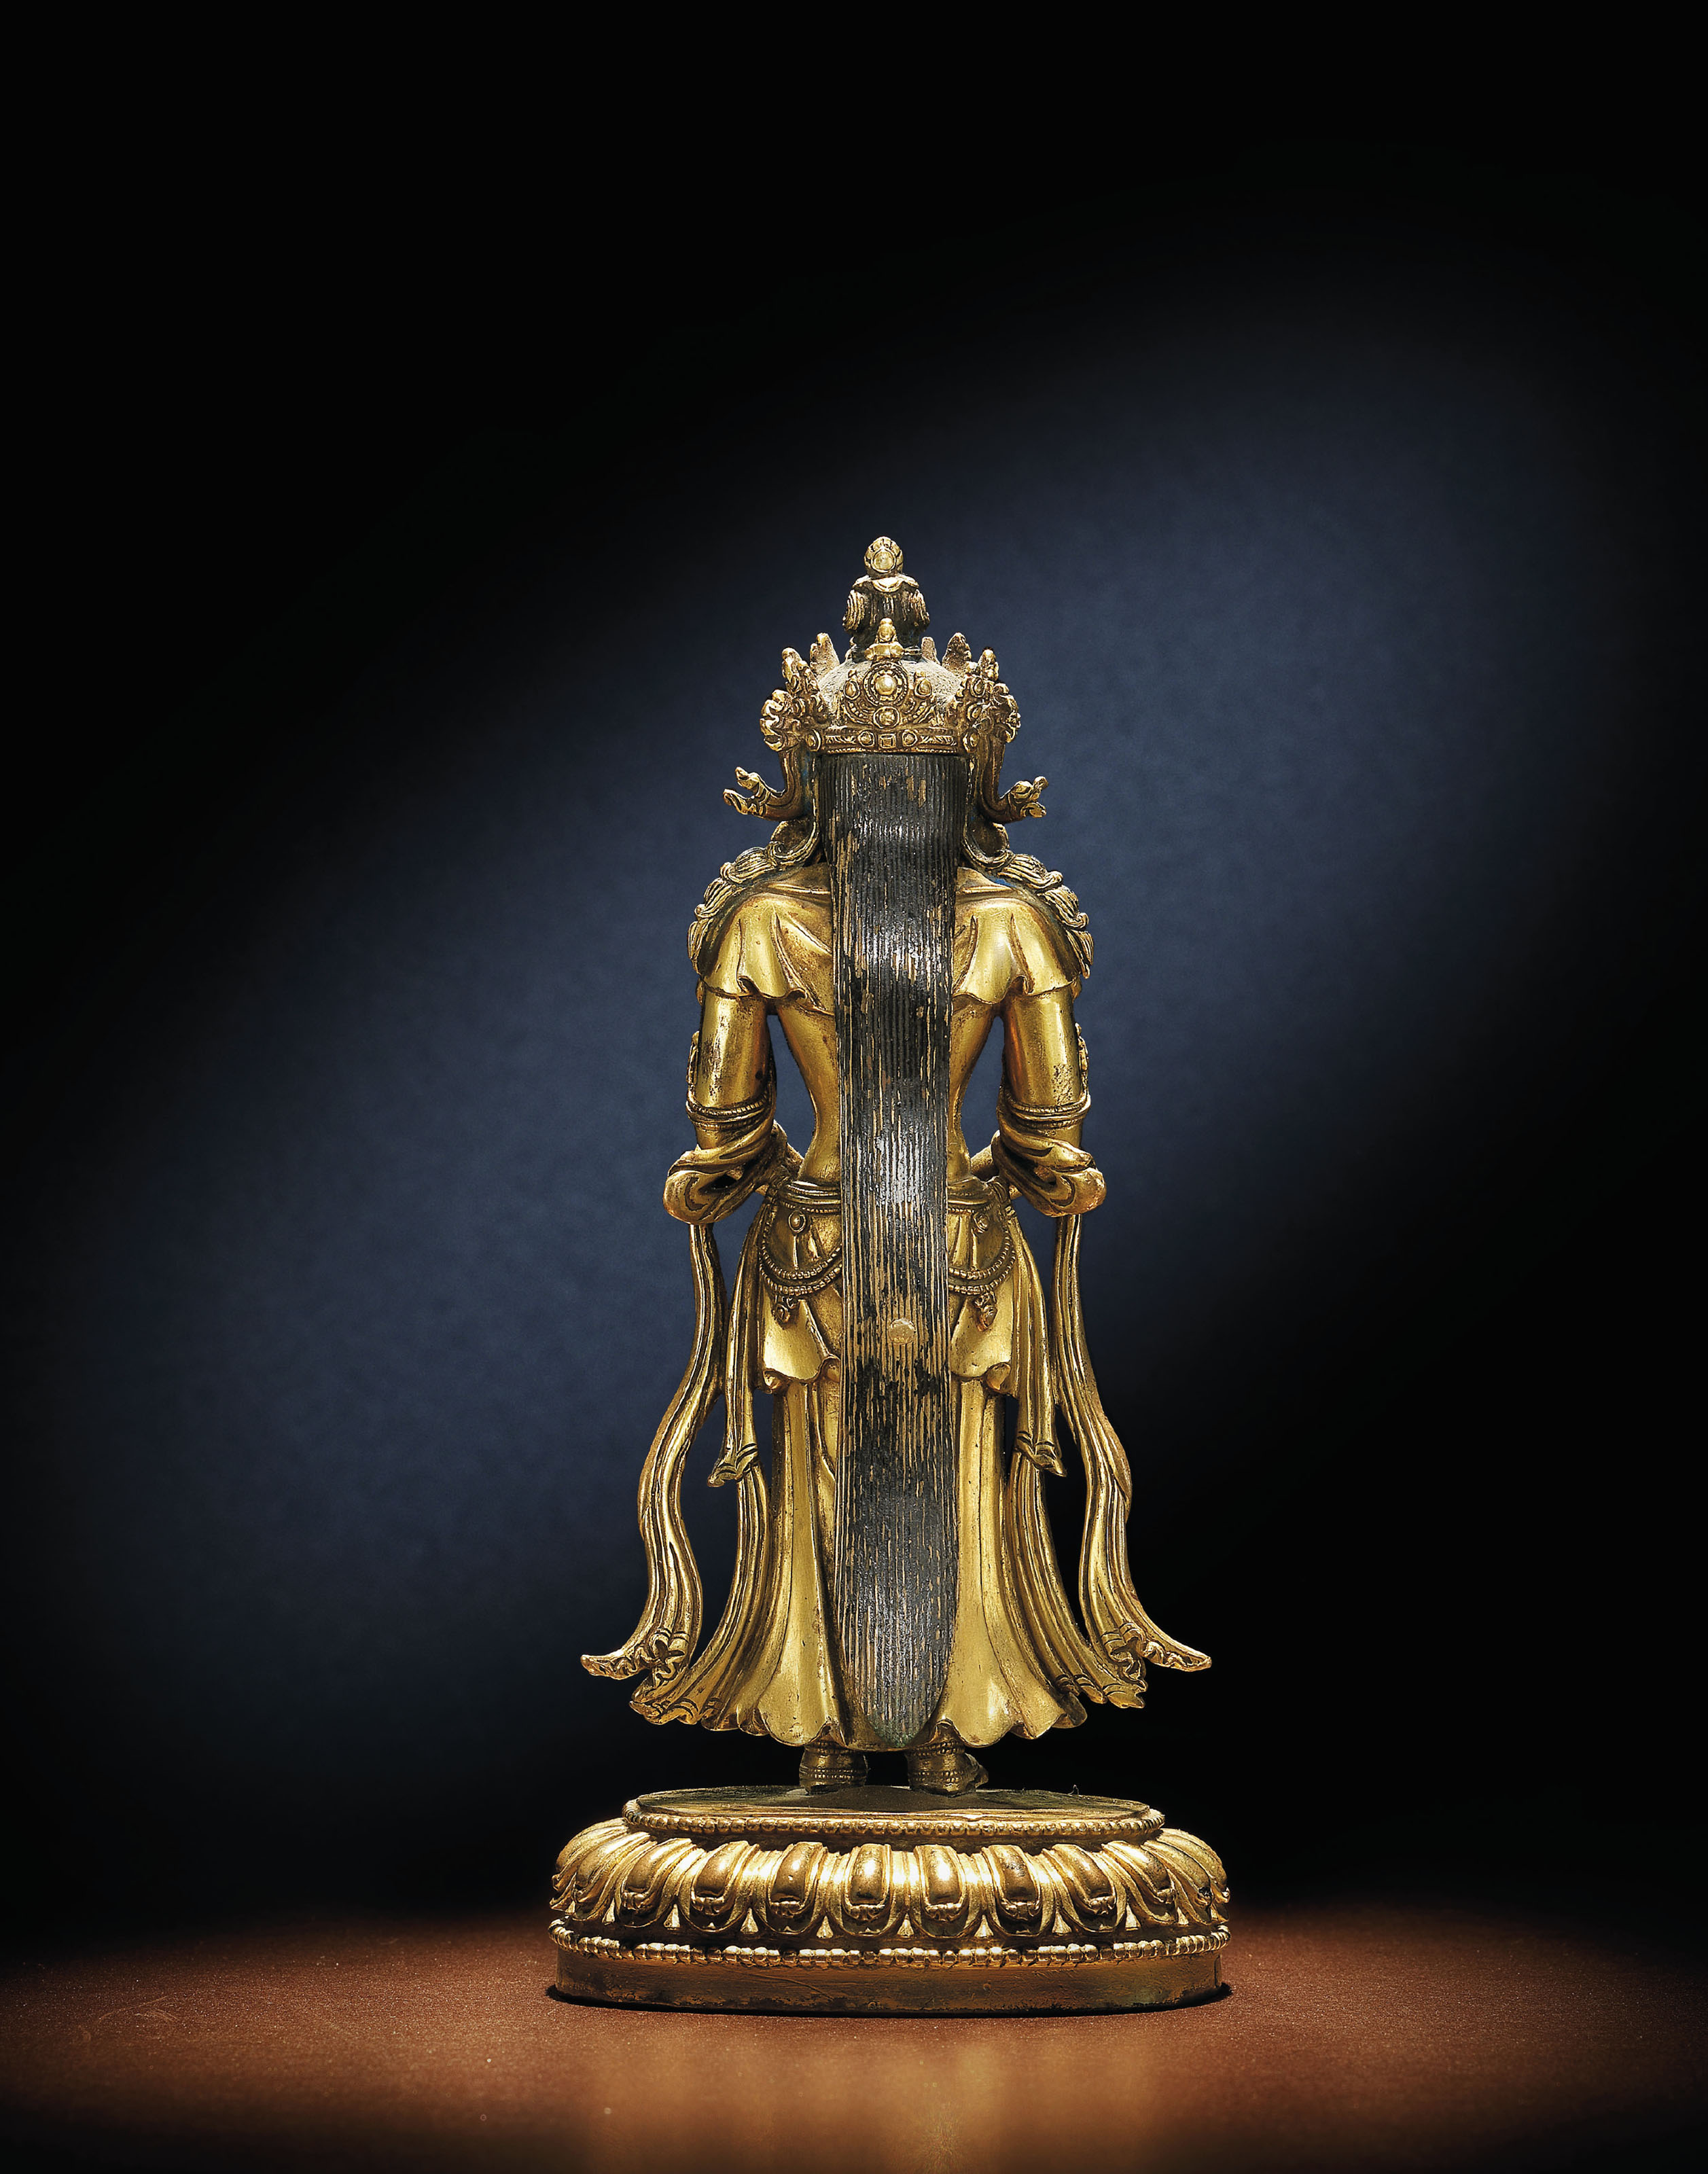 A FINE AND EXTREMELY RARE GILT-BRONZE FIGURE OF AMITAYUS